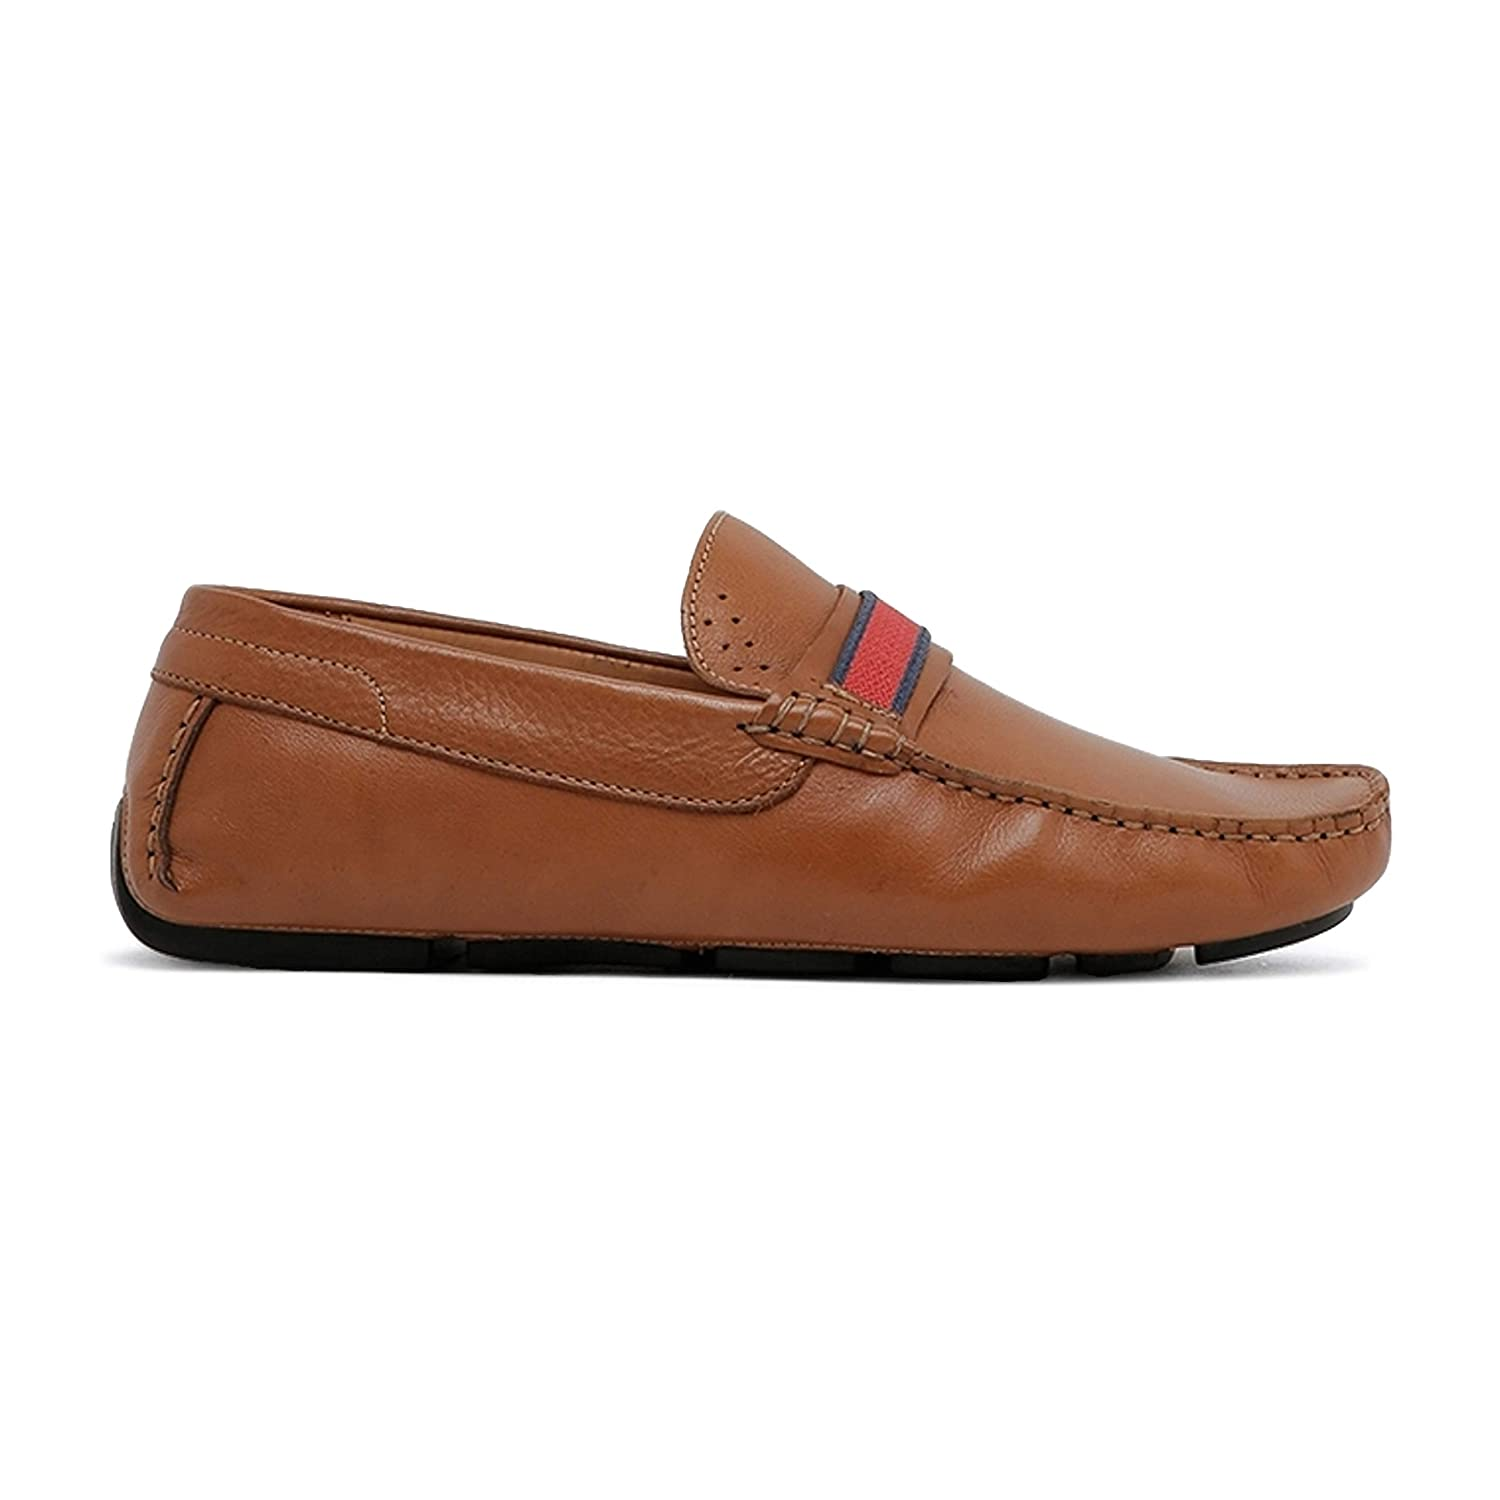 Ccc Austin Reed Men S Ald 01 Slip On Formal Shoes 42 Eu Tan Buy Online At Best Price In Uae Amazon Ae